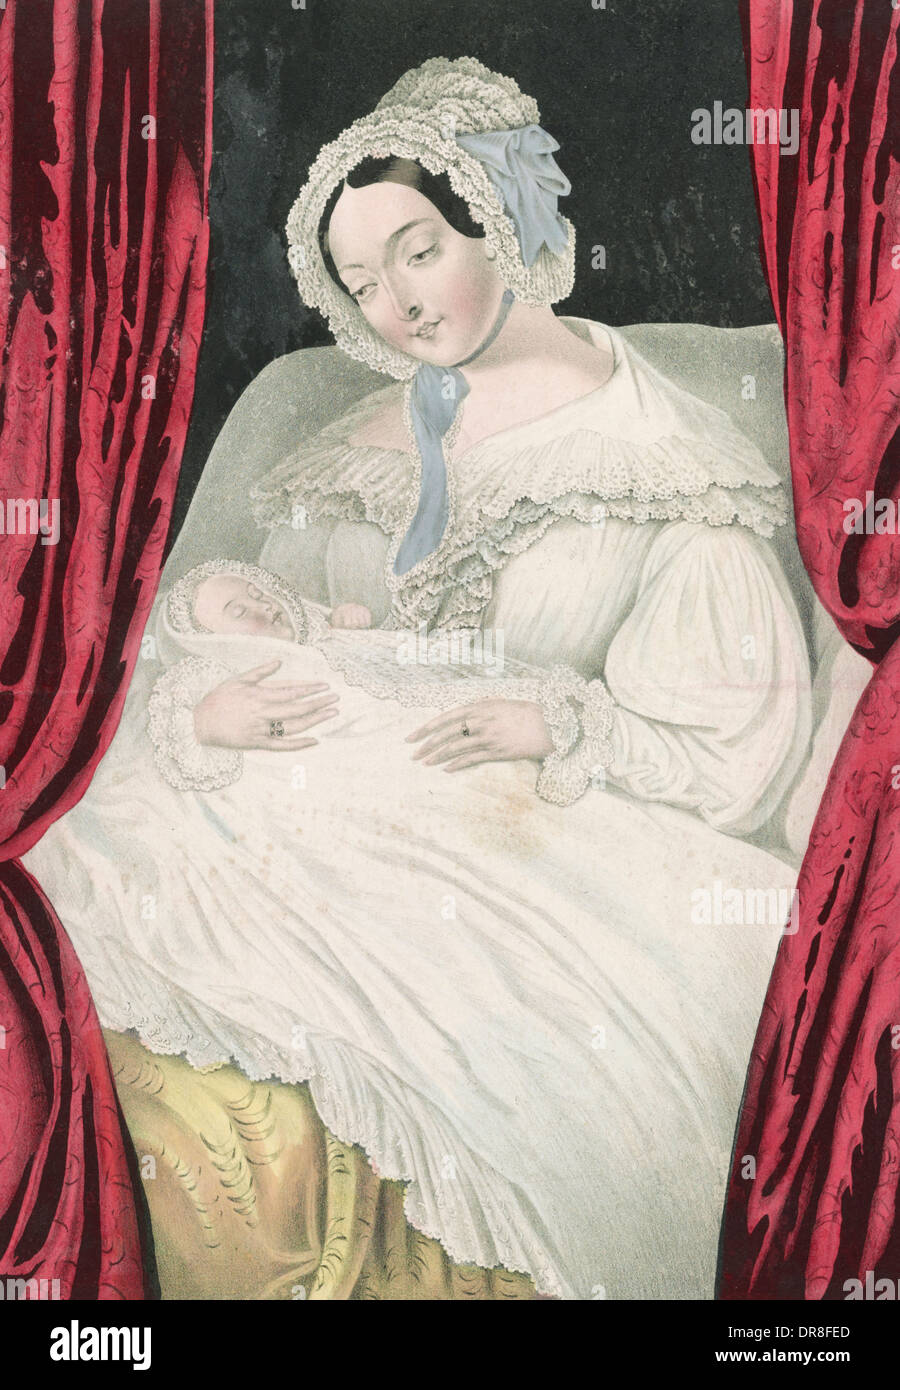 Maternal affection - Mother with young child, circa 1845 - Stock Image